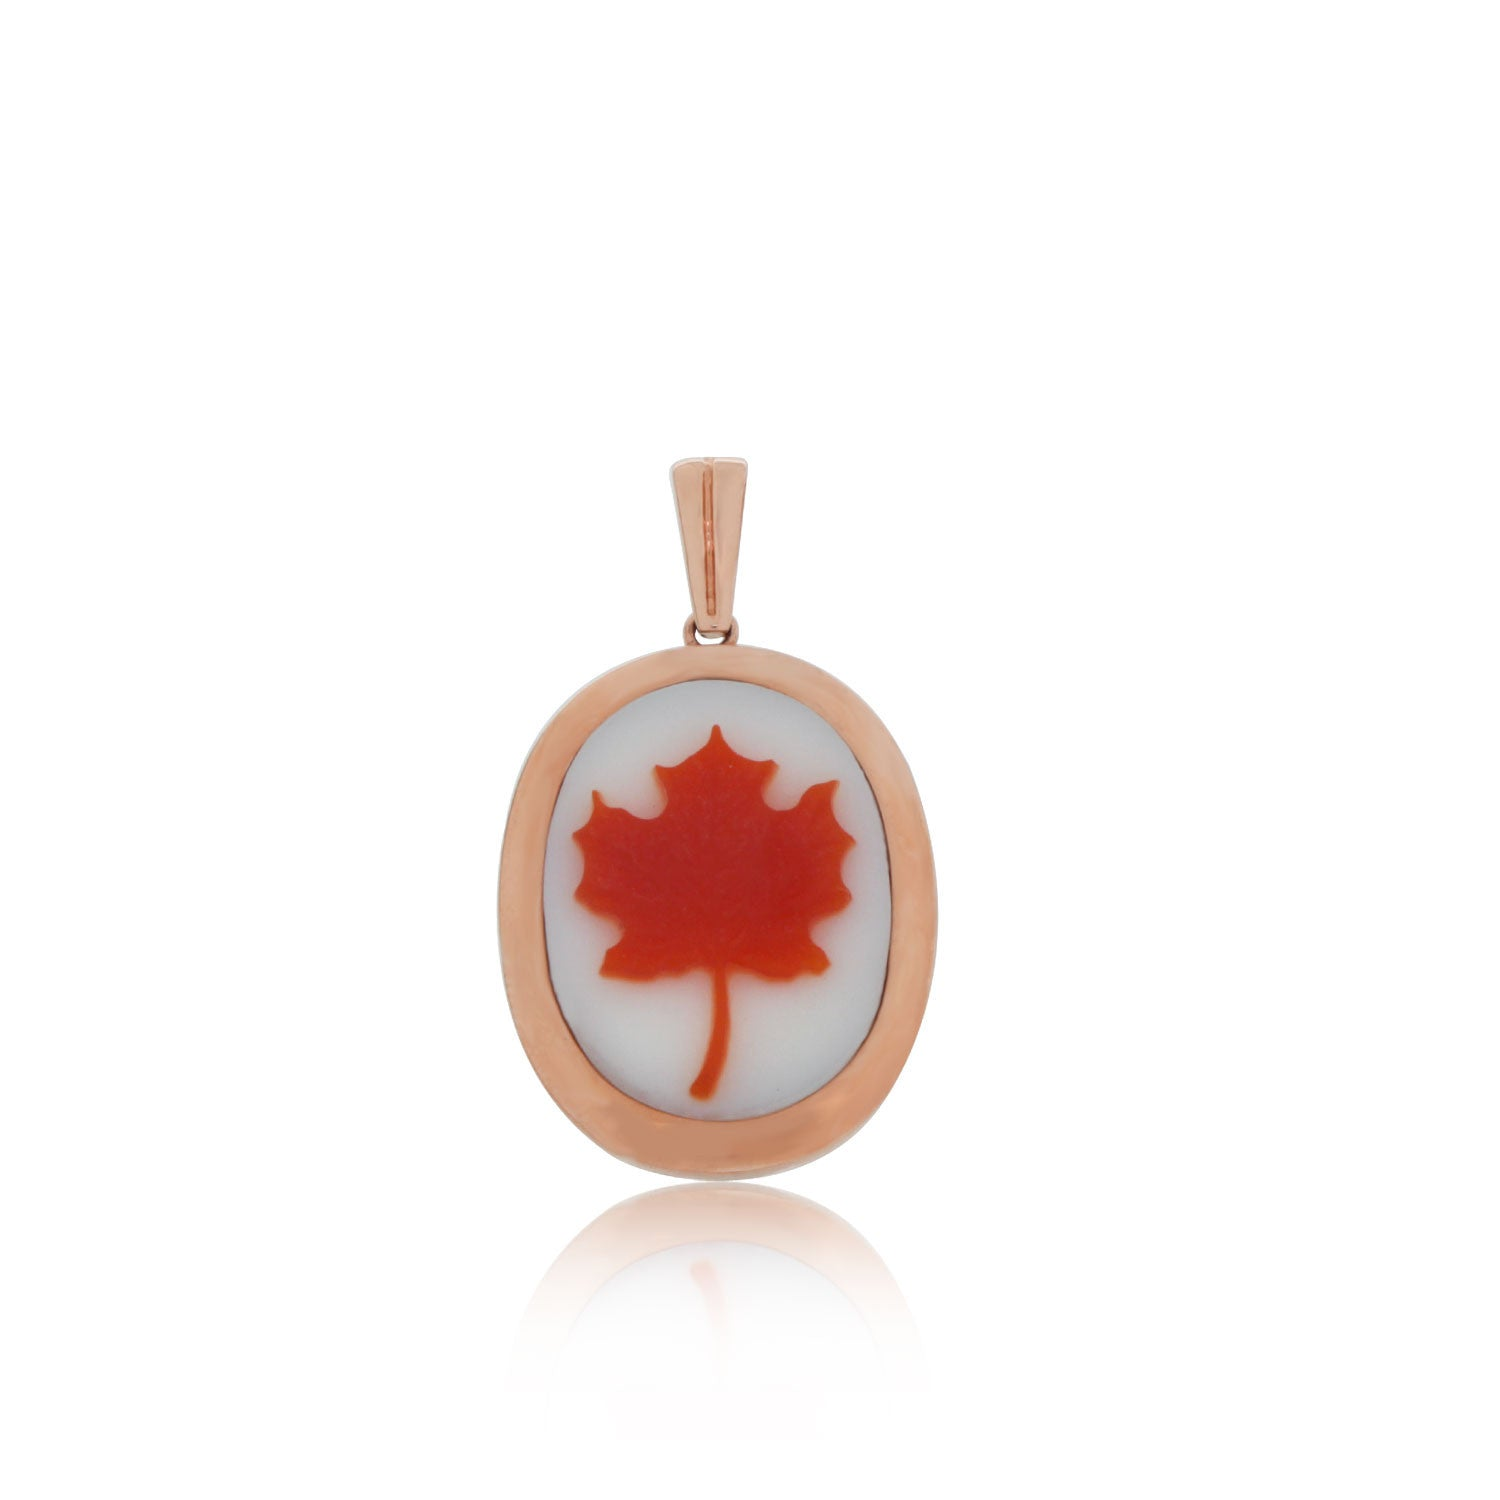 Maple leaf cameo pendant in white and red agate 20 x 15 mm oval maple leaf cameo pendant in white and red agate 20 x 15 mm oval aloadofball Images